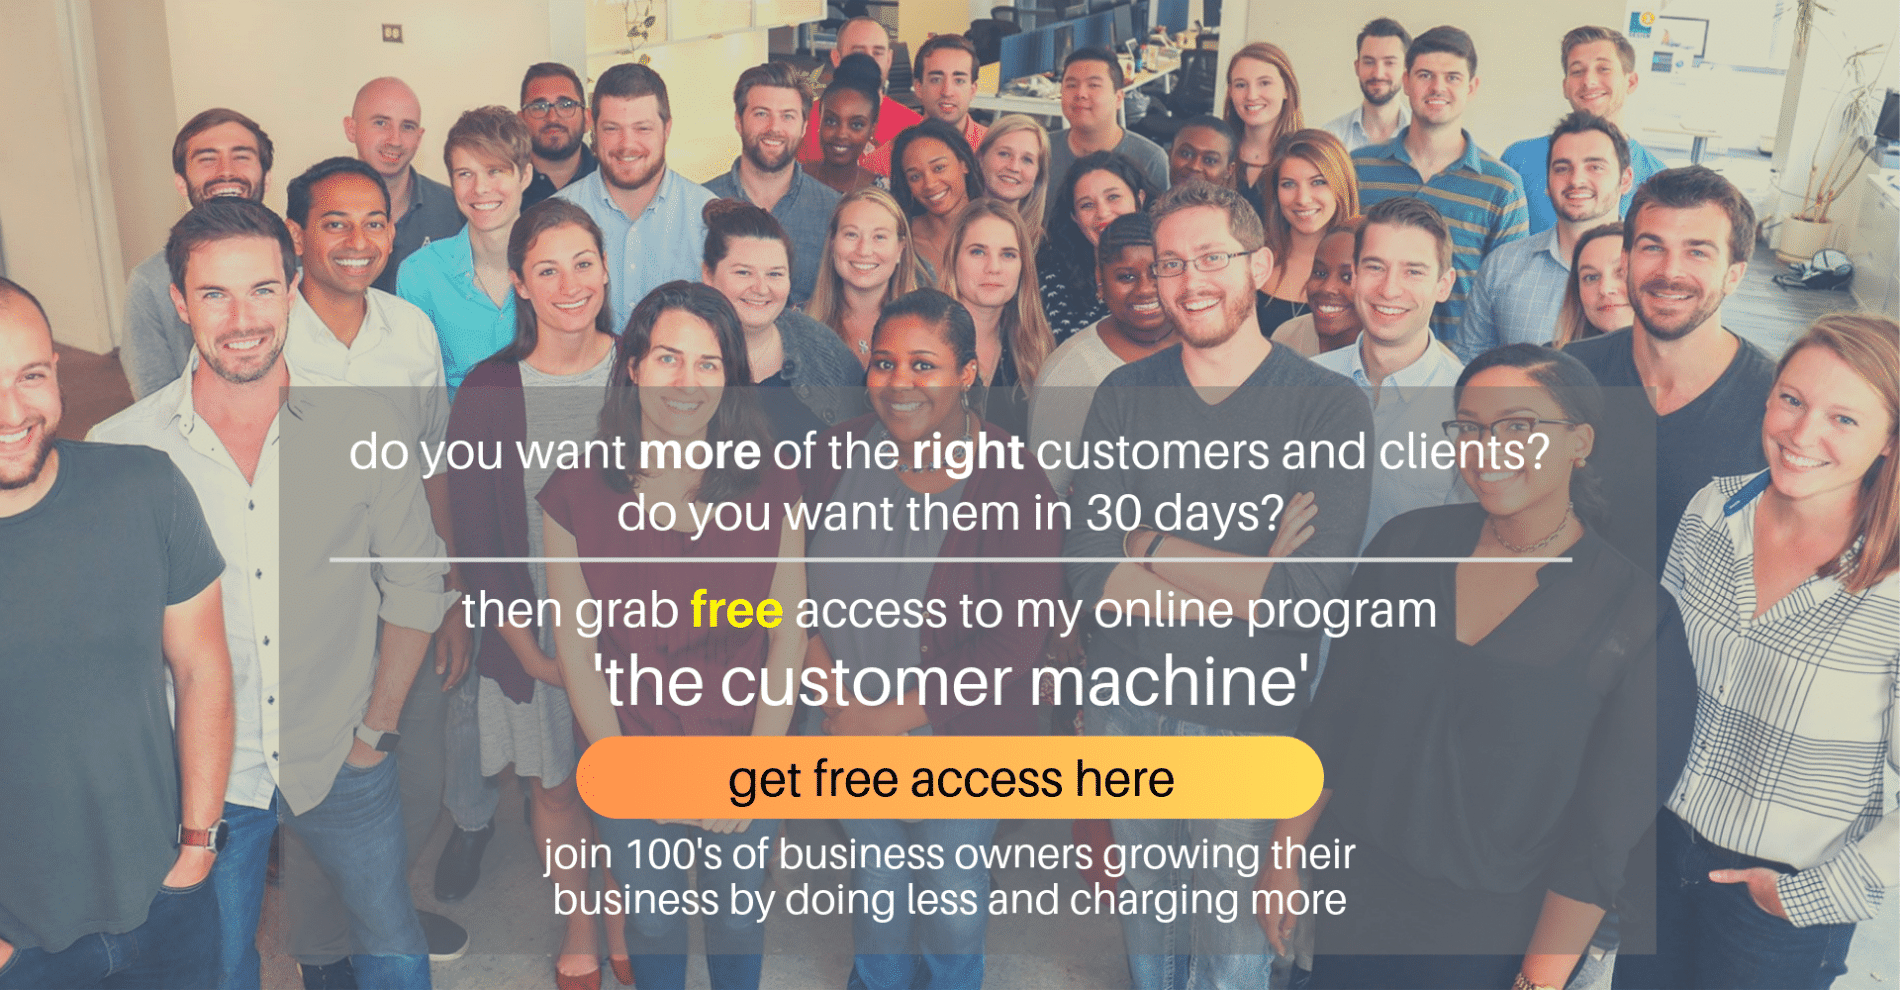 Marc Ford business coach customer machine online program business coaching Leicester